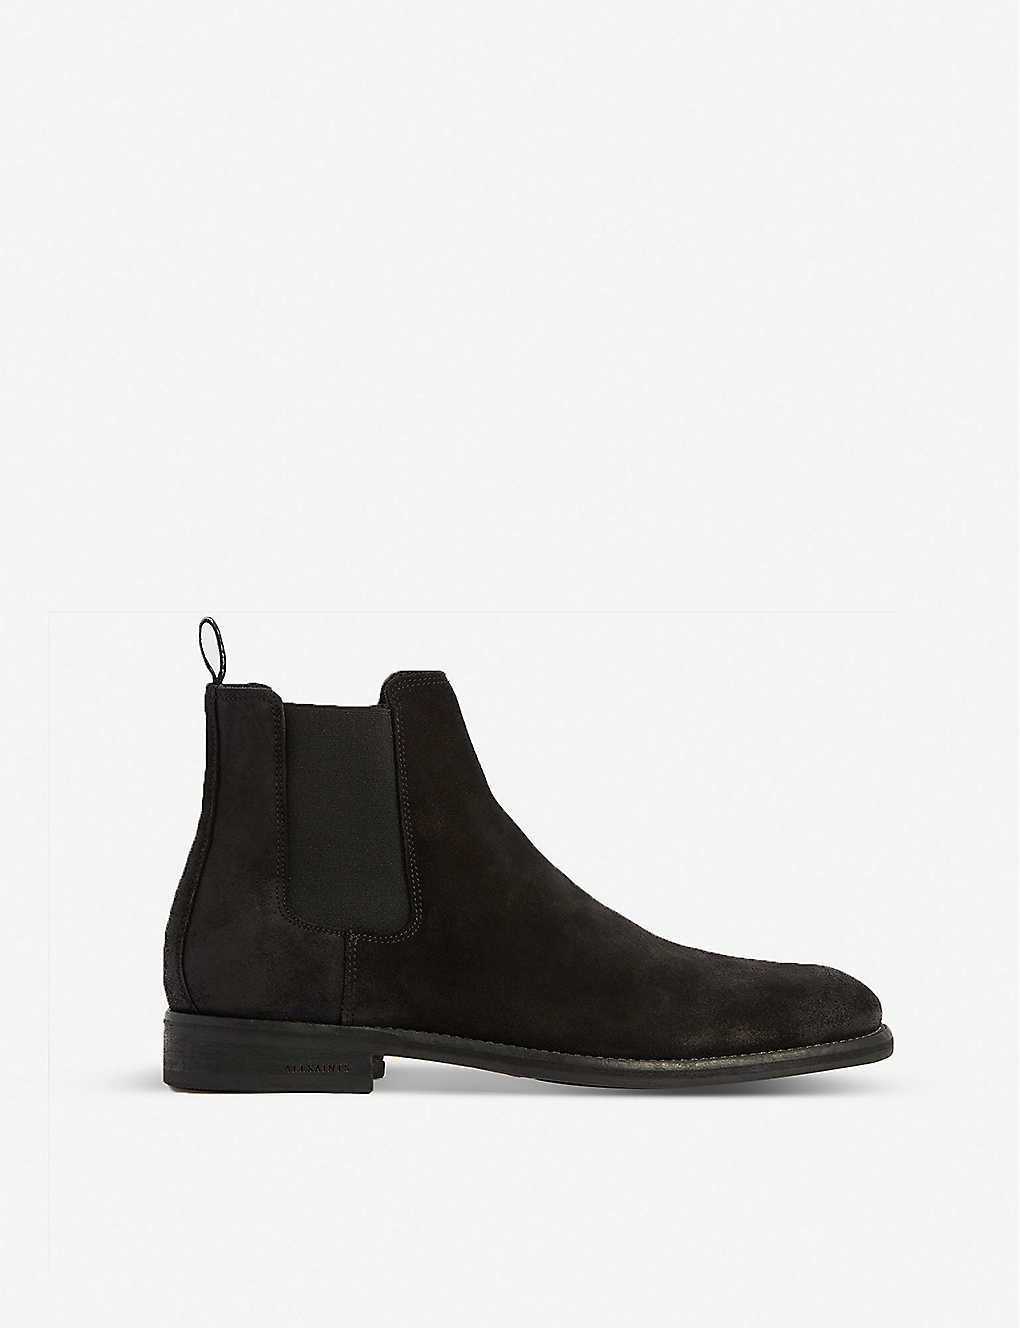 ALLSAINTS: Harley distressed-toe suede Chelsea boots